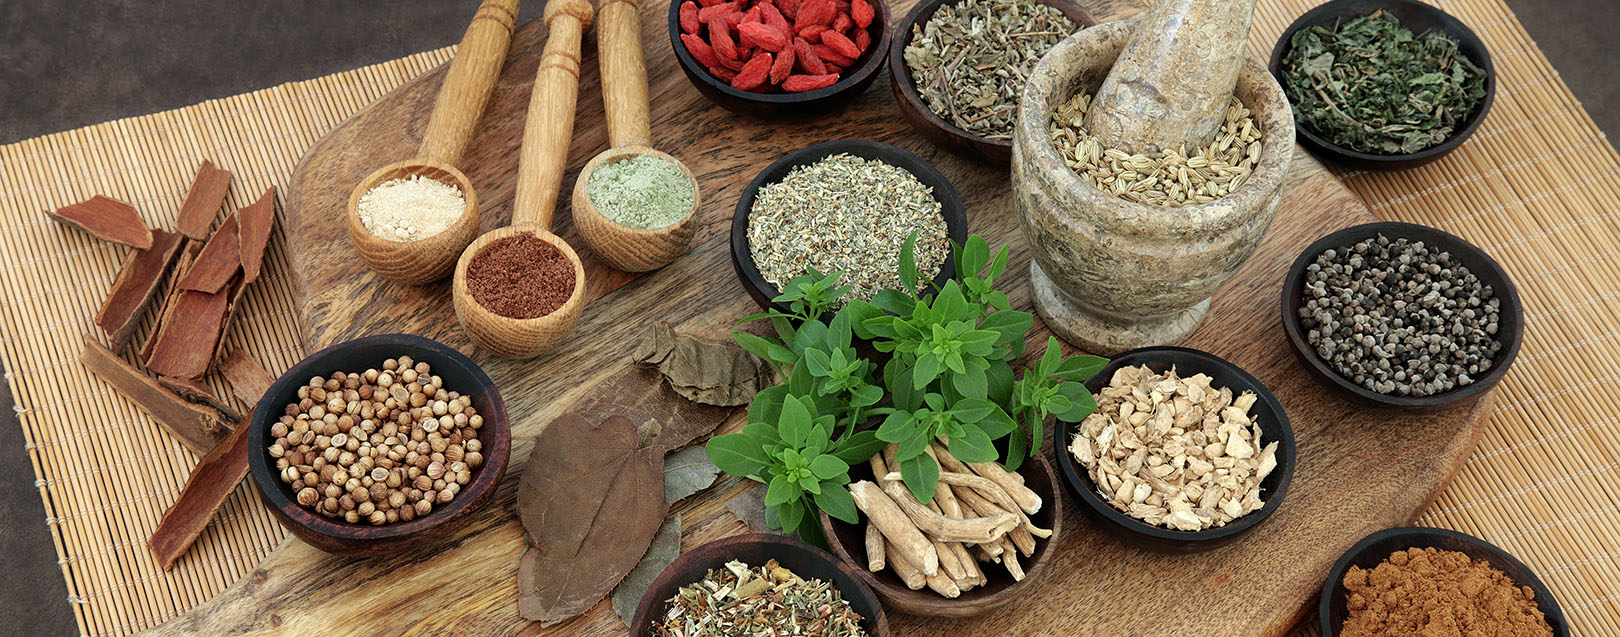 AYUSH Minister seeks inputs from global experts to turn India into Ayurveda hub